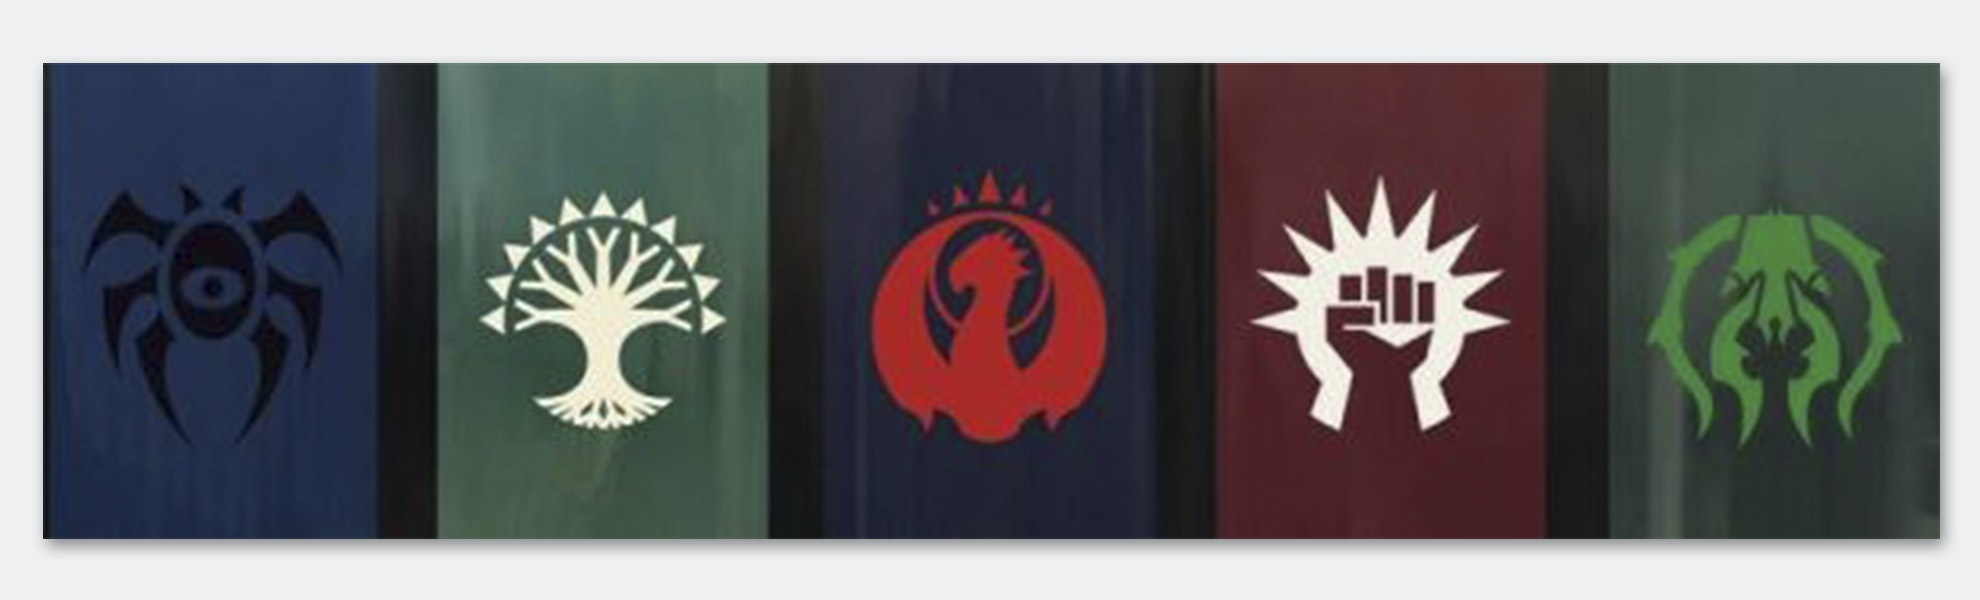 Guilds of Ravnica Theme Booster Set Preorder